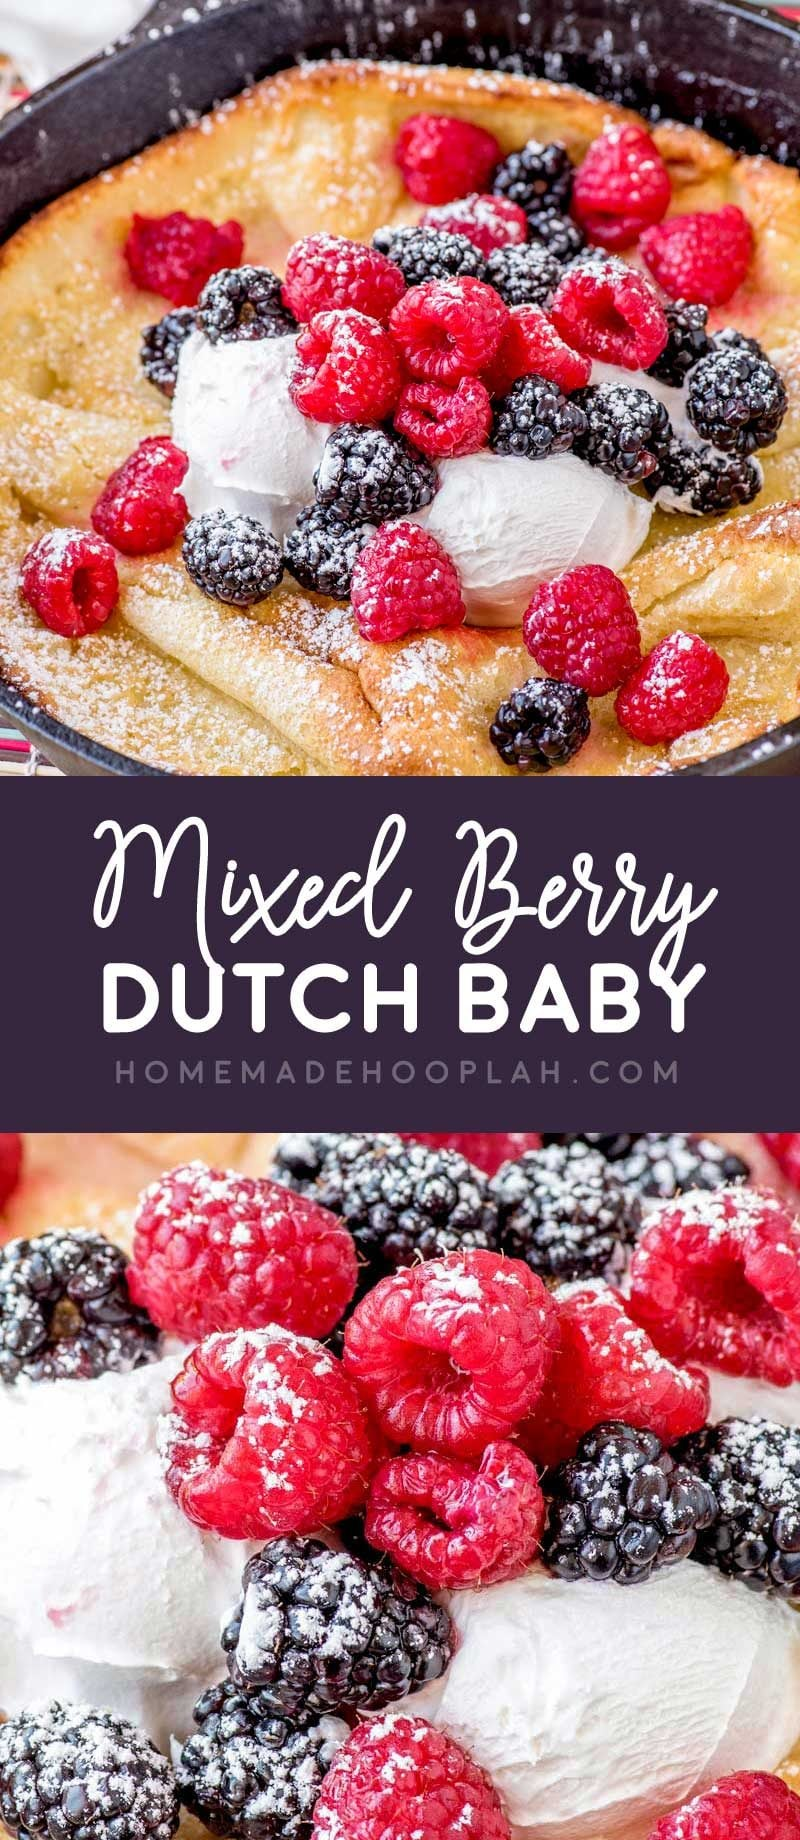 Mixed Berry Dutch Baby! Whether you call it a German pancake or a Dutch baby, this puffy oven pancake is an easy crowd-pleasing breakfast with a light flavor. A snap to customize! | HomemadeHooplah.com